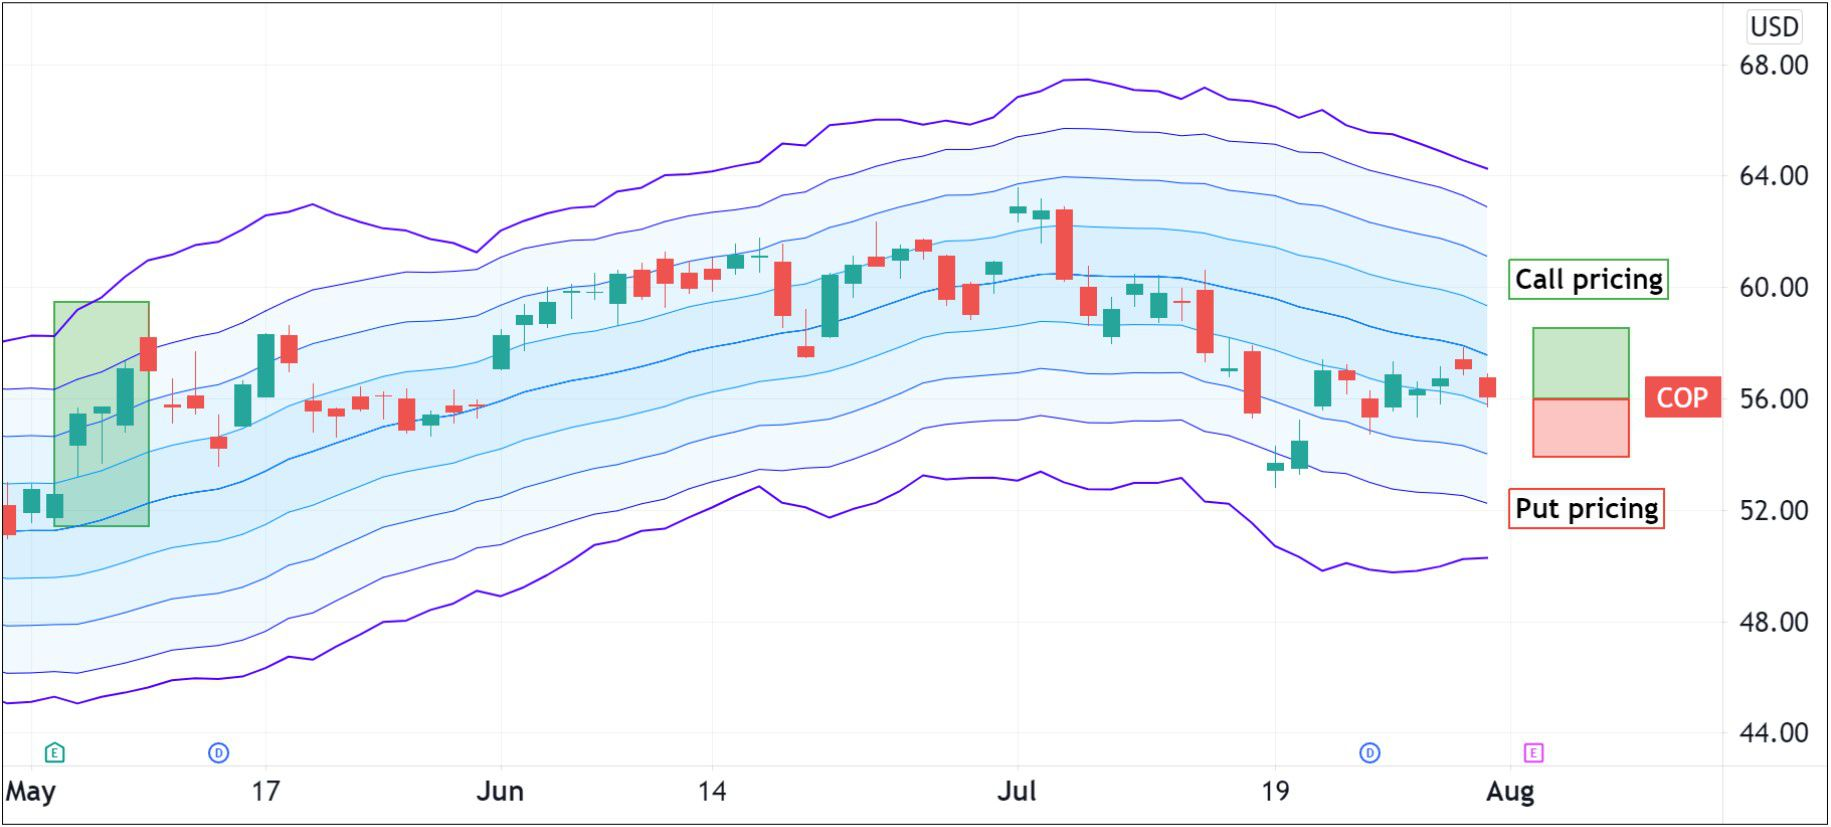 Option pricing for ConocoPhillips (COP)